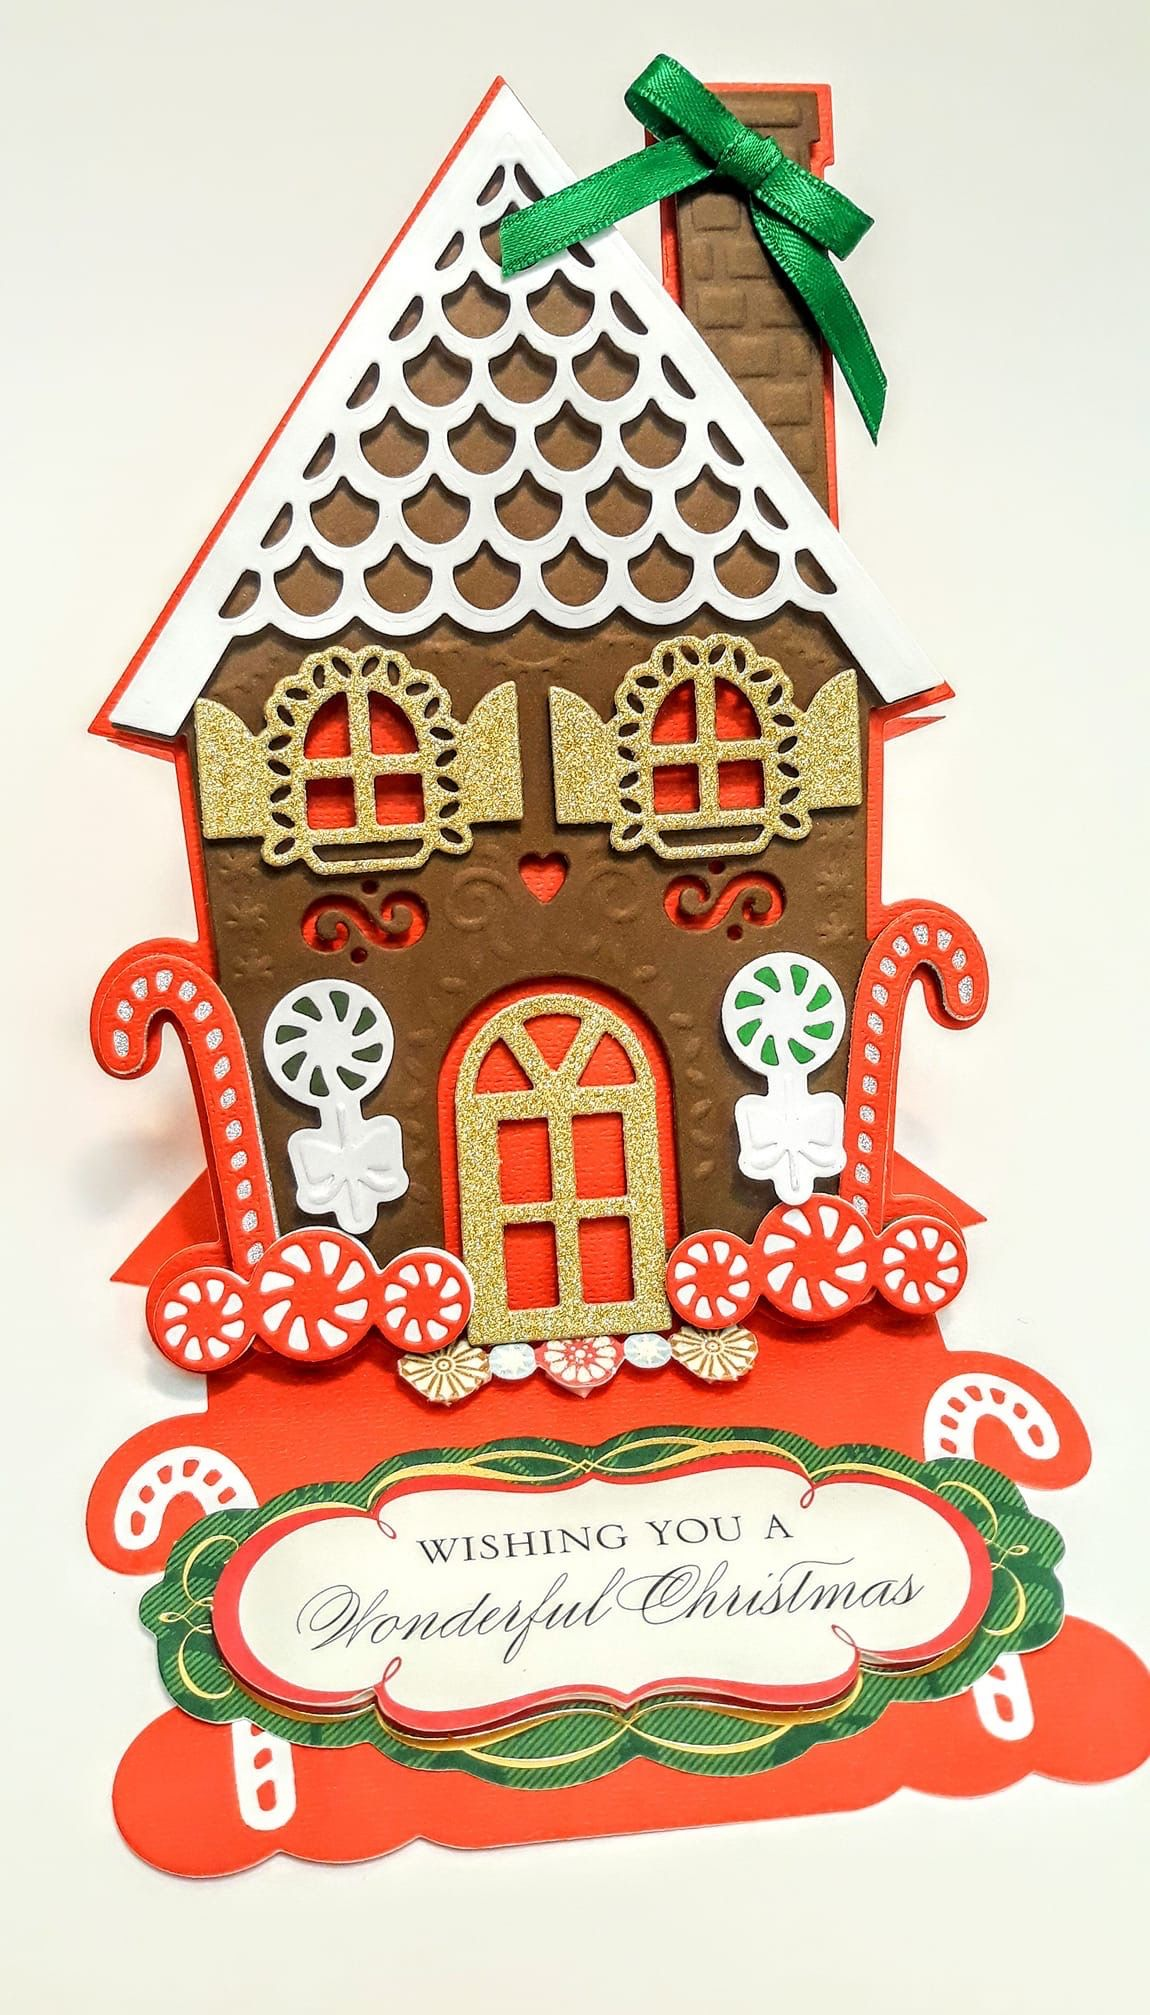 Gingerbread House Christmas Card When I Find A Card I Made On Pinterest And I Didn T Anna Griffin Christmas Cards Christmas Cards Handmade Anna Griffin Cards